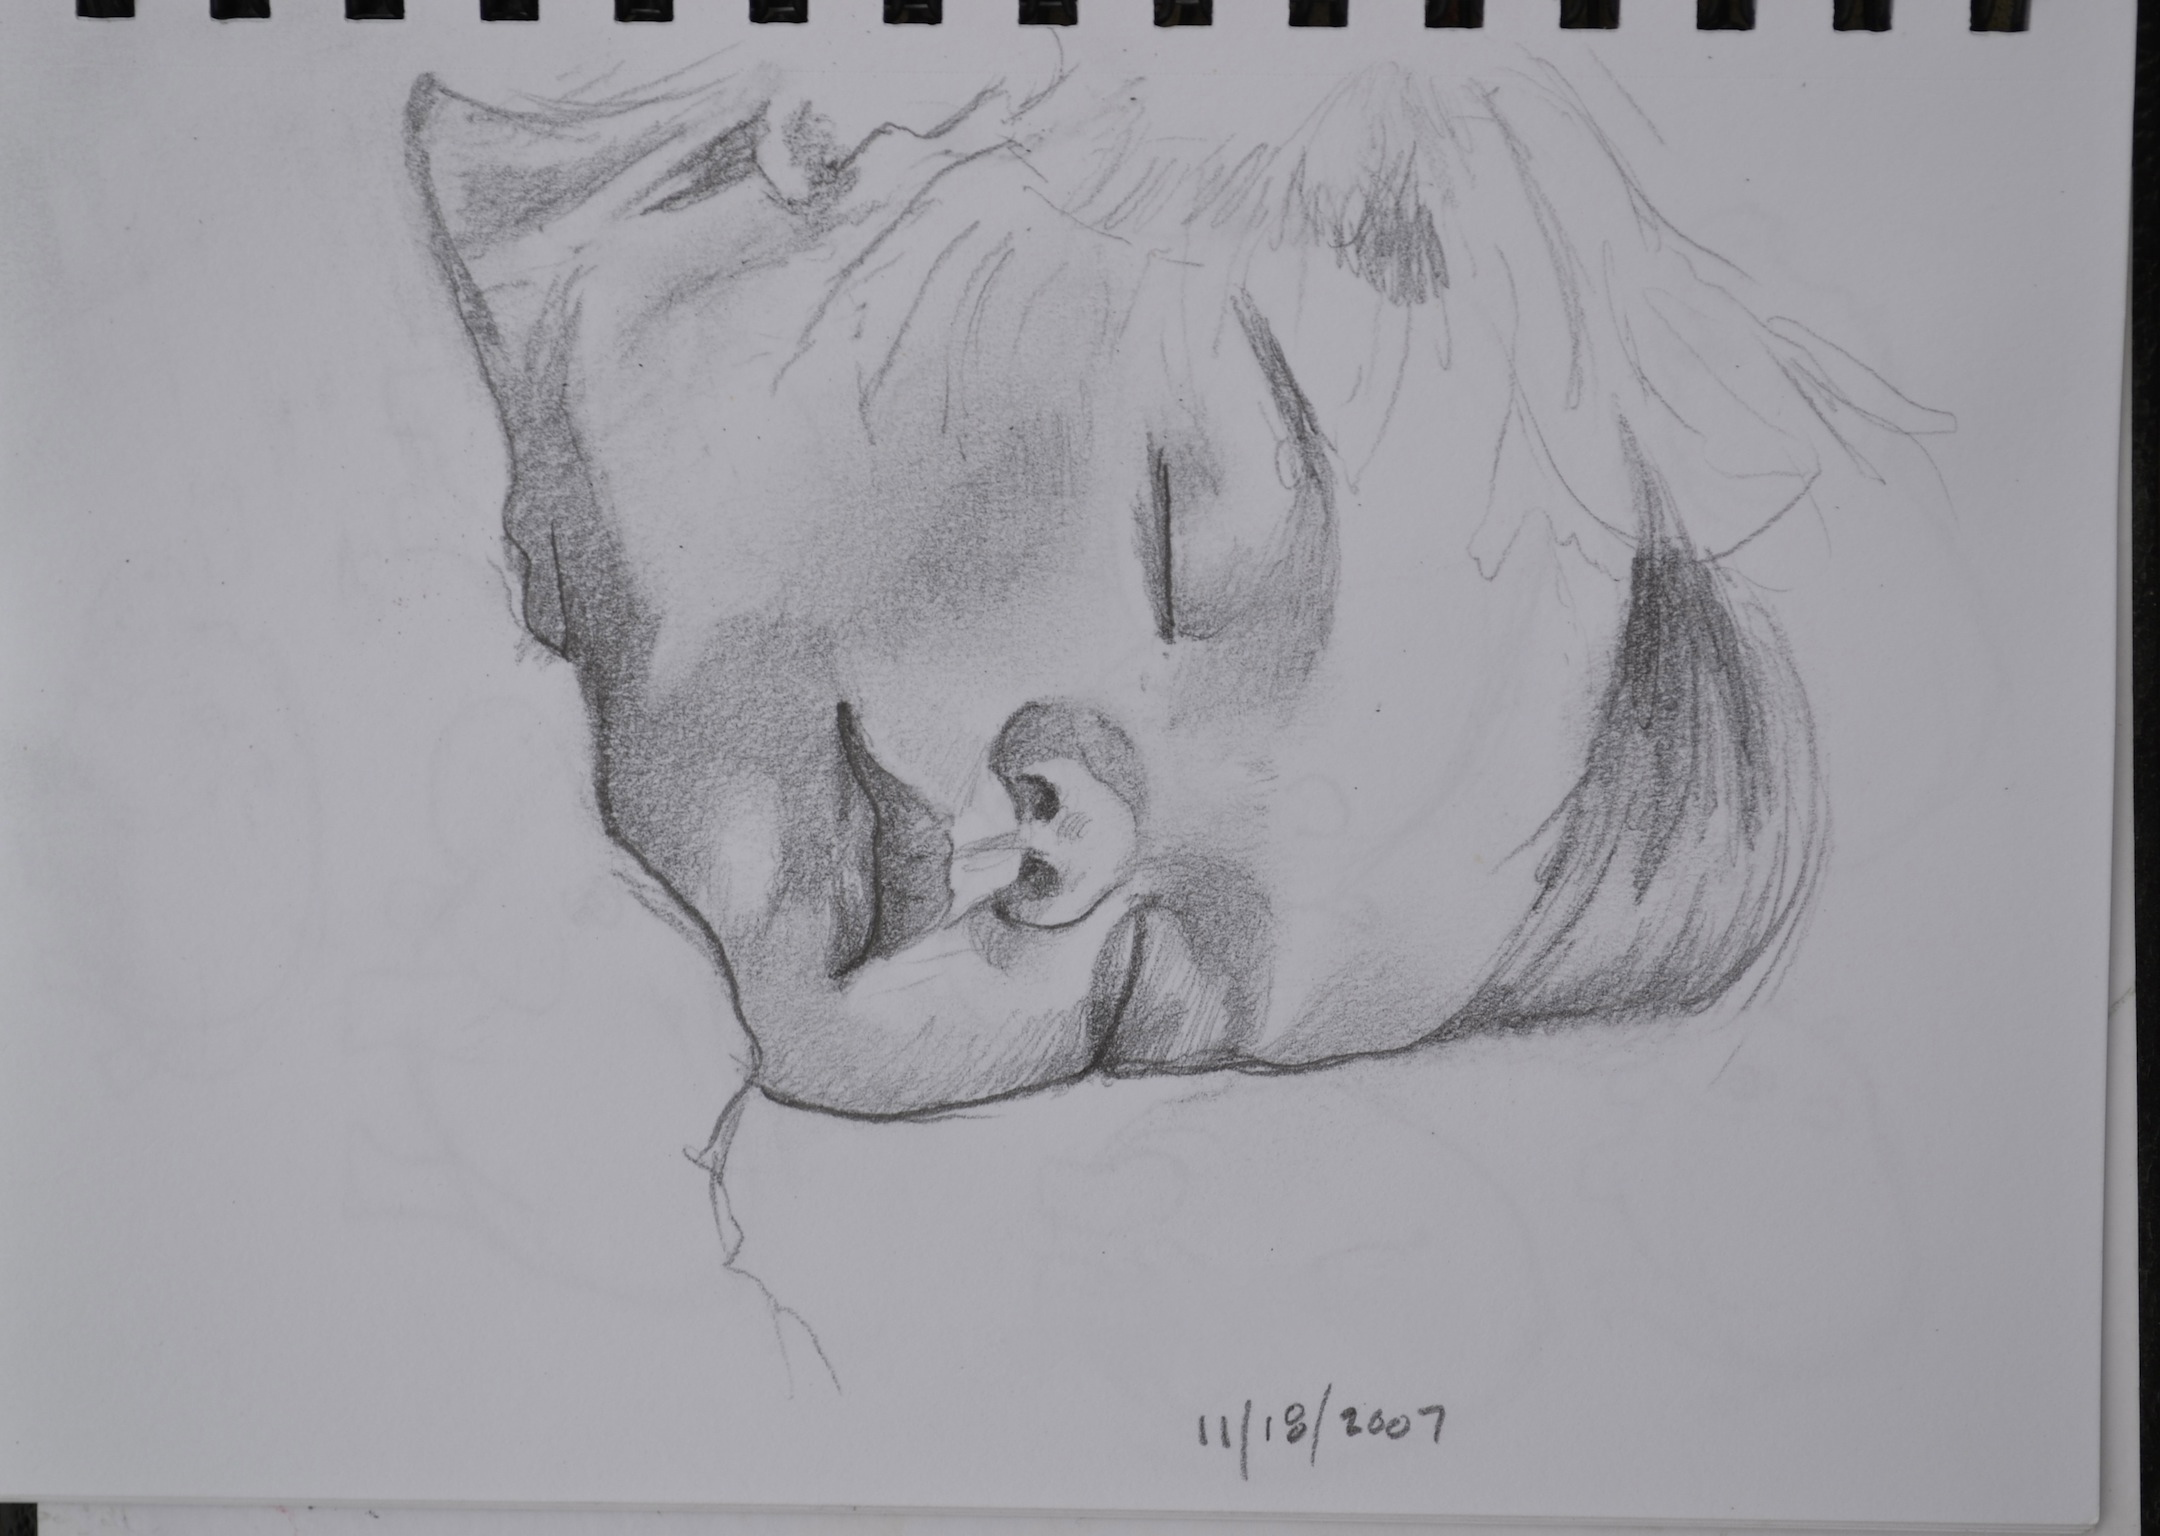 A sketch of a sleeping child by Jonathan Fenske